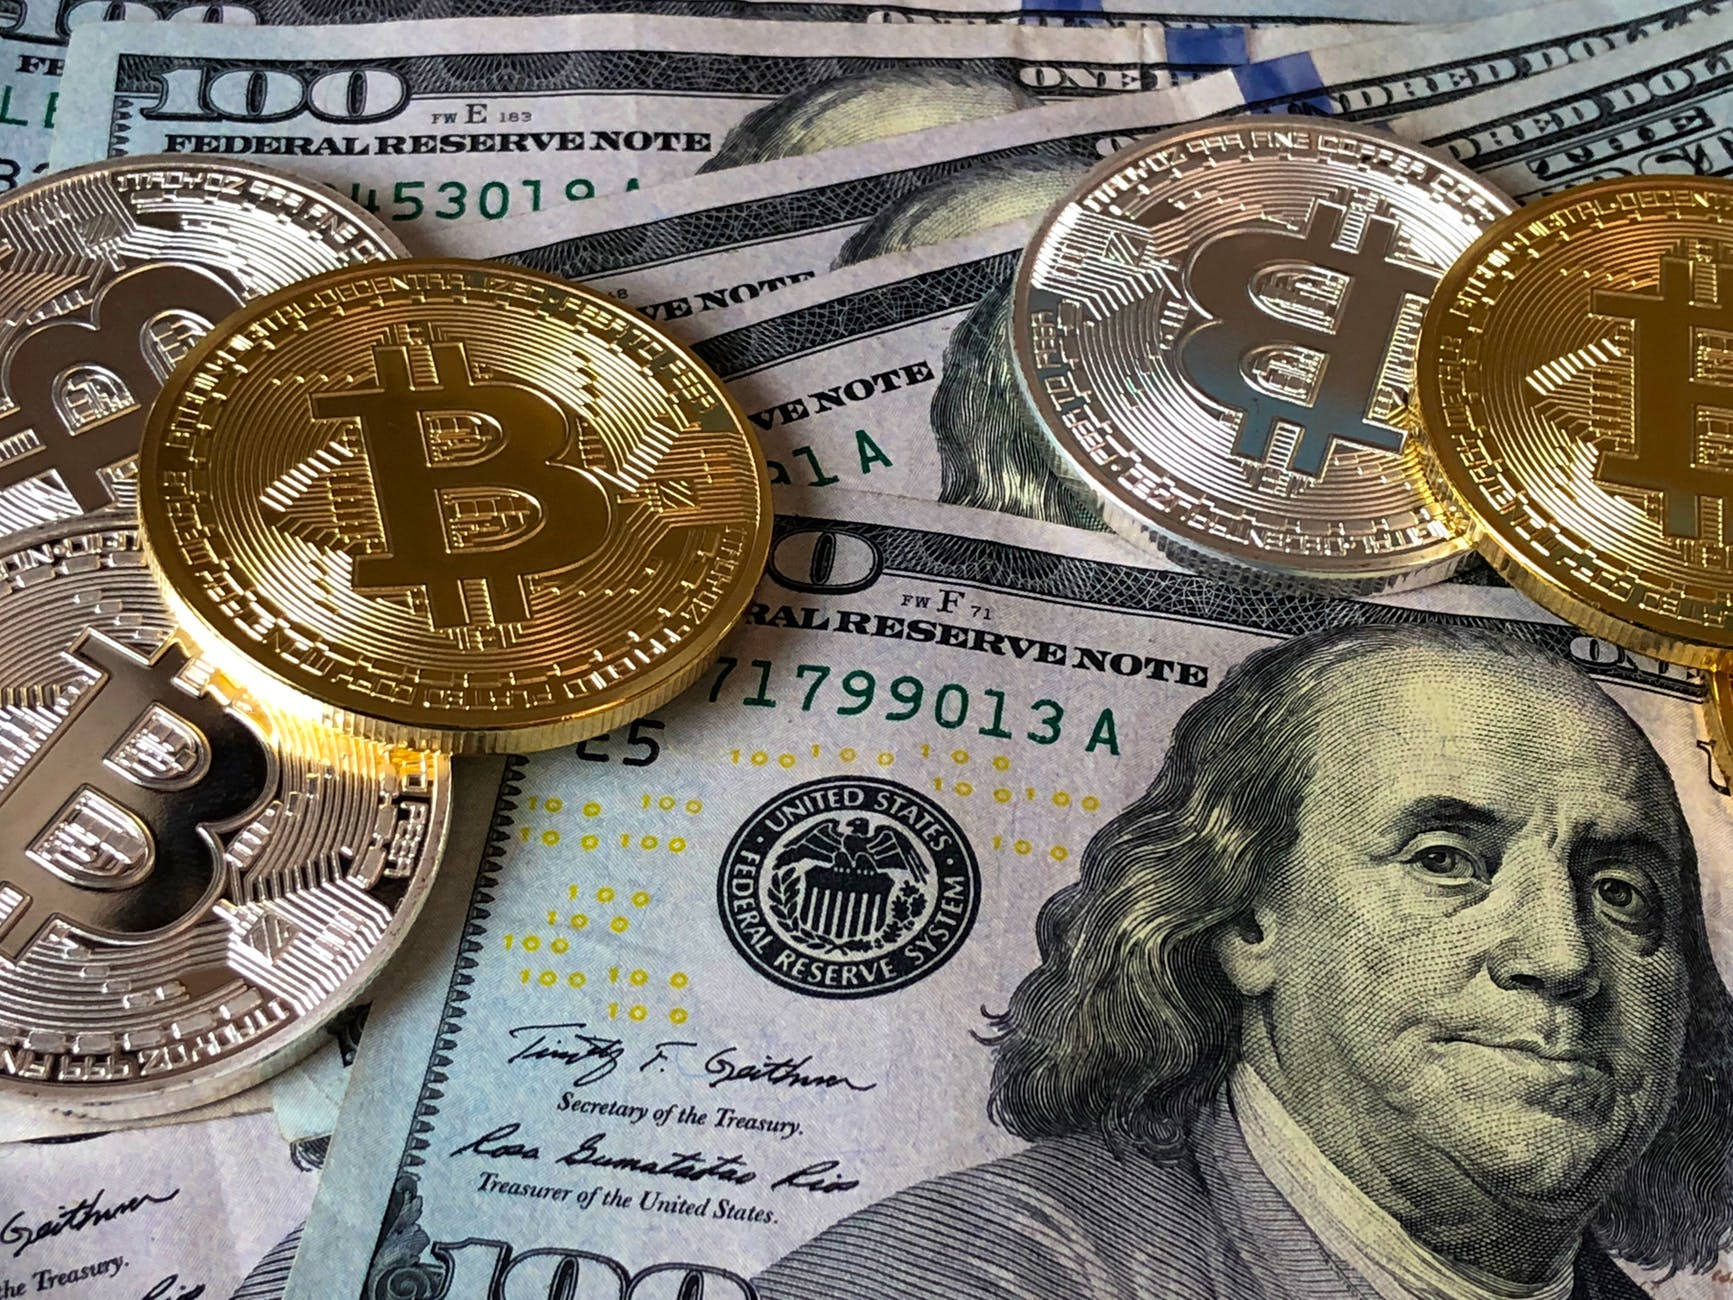 currency notes and coins with symbol B on display - cryptocurrency simplified